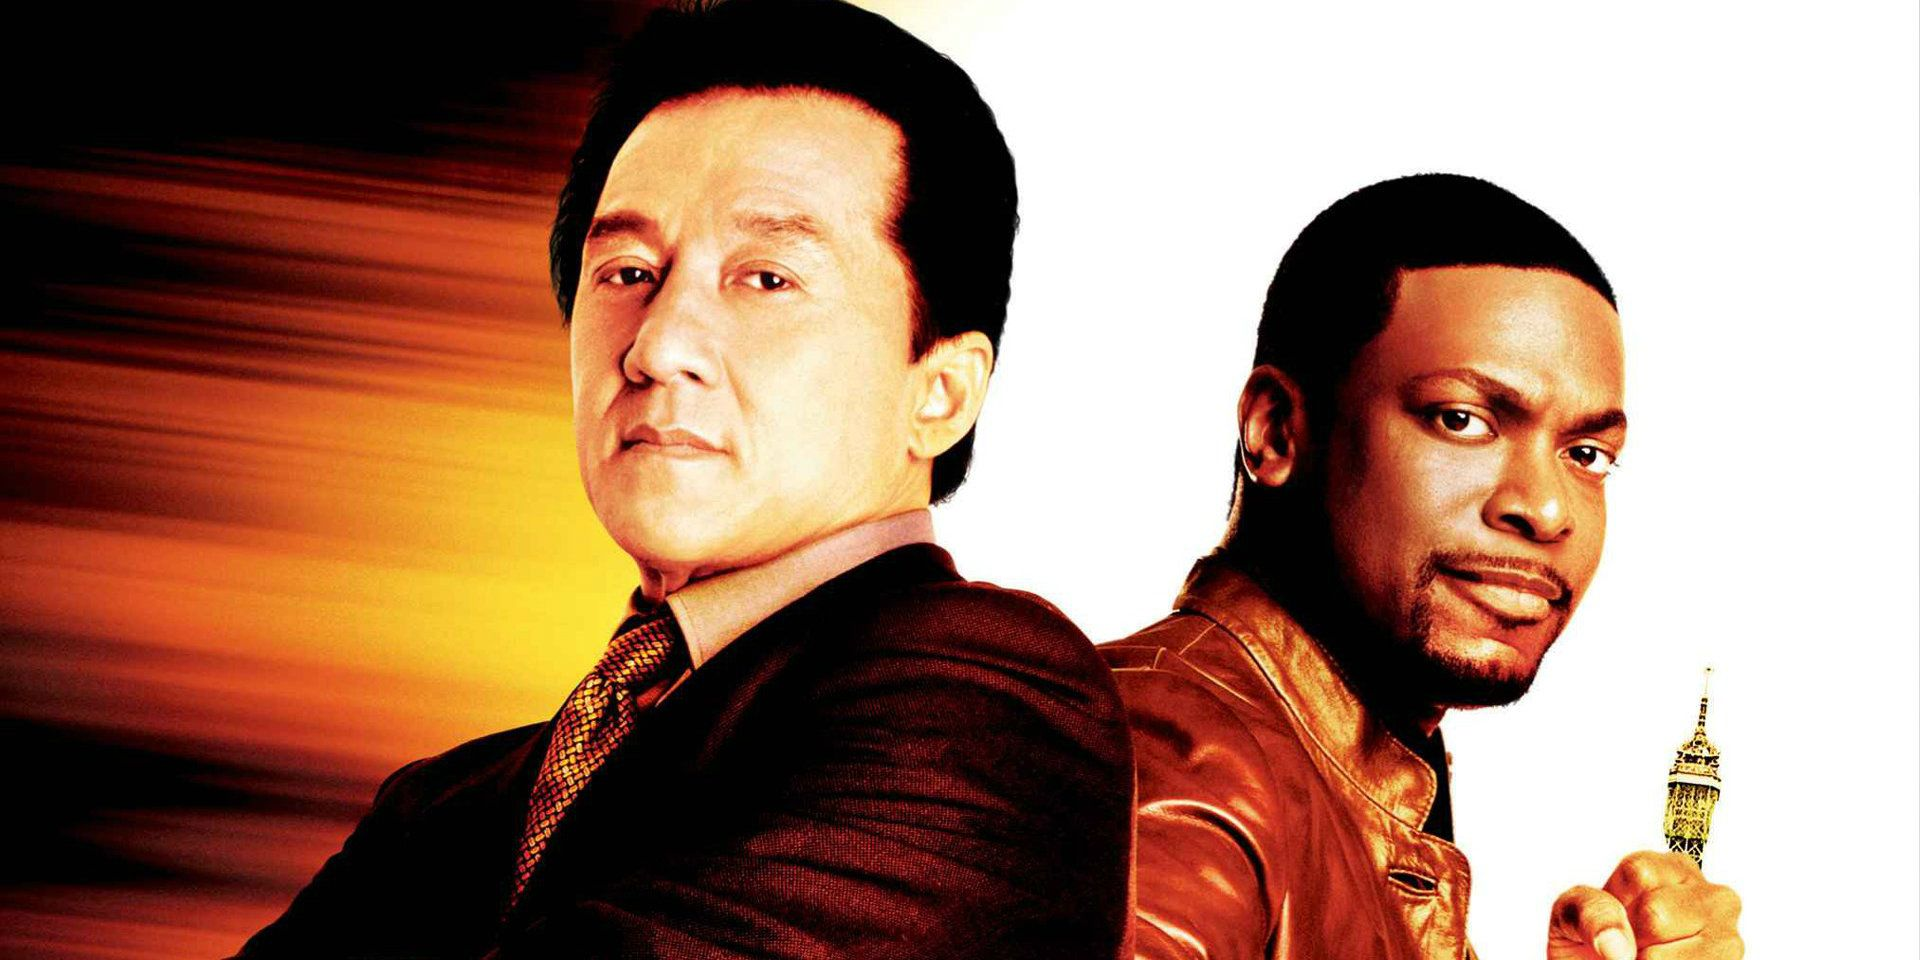 Movie Rush Hour 4 (2019) 52